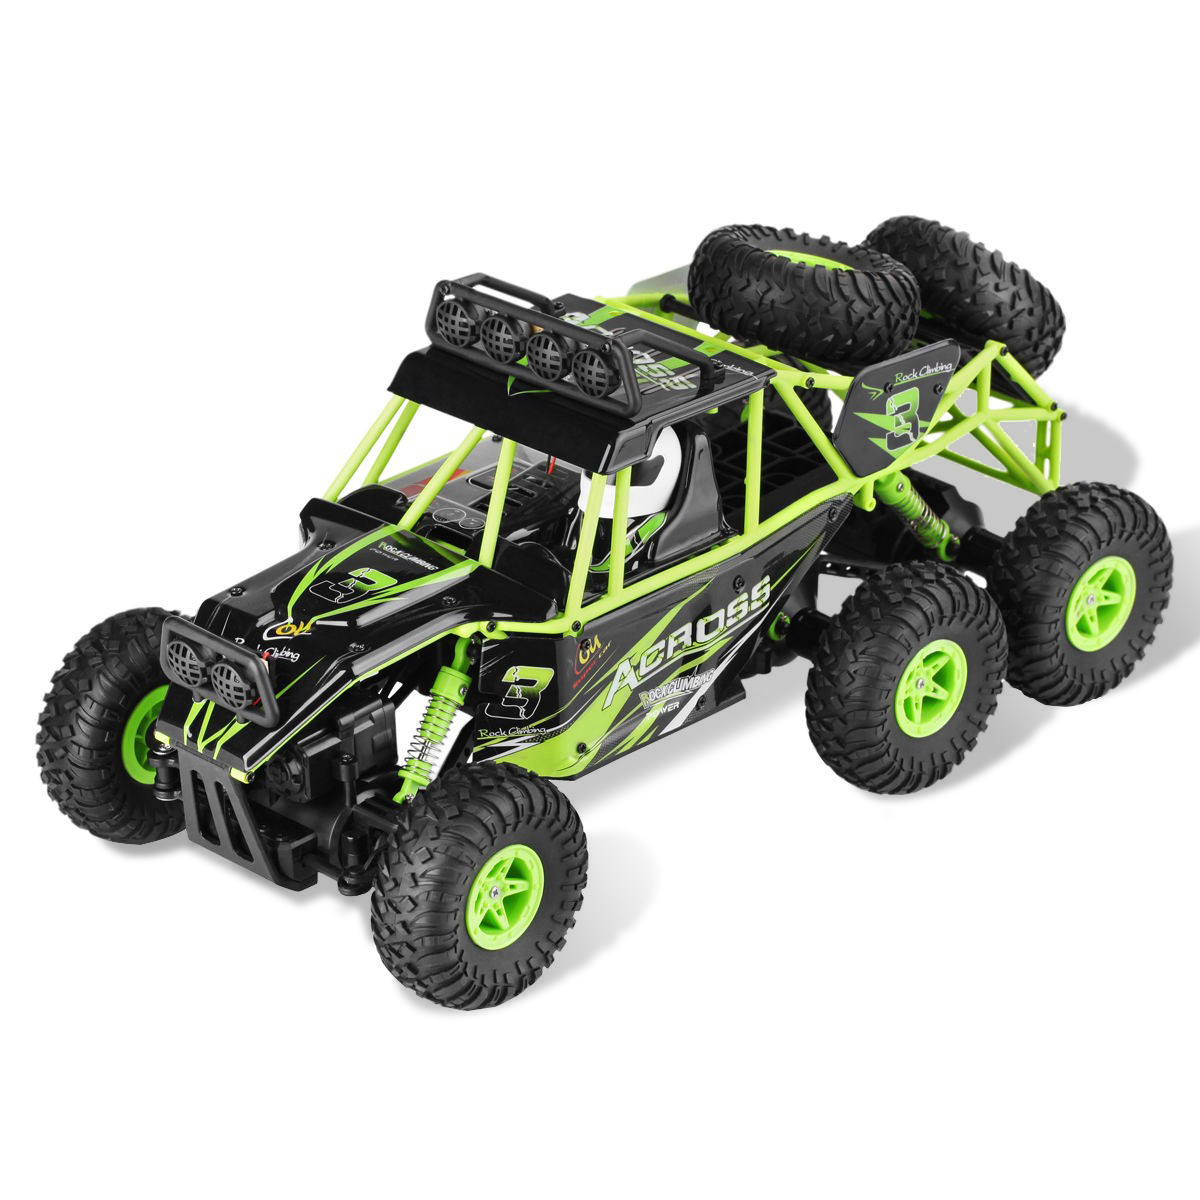 1:18 2.4 G 6 WD Off-road RC Racing Climbing Car